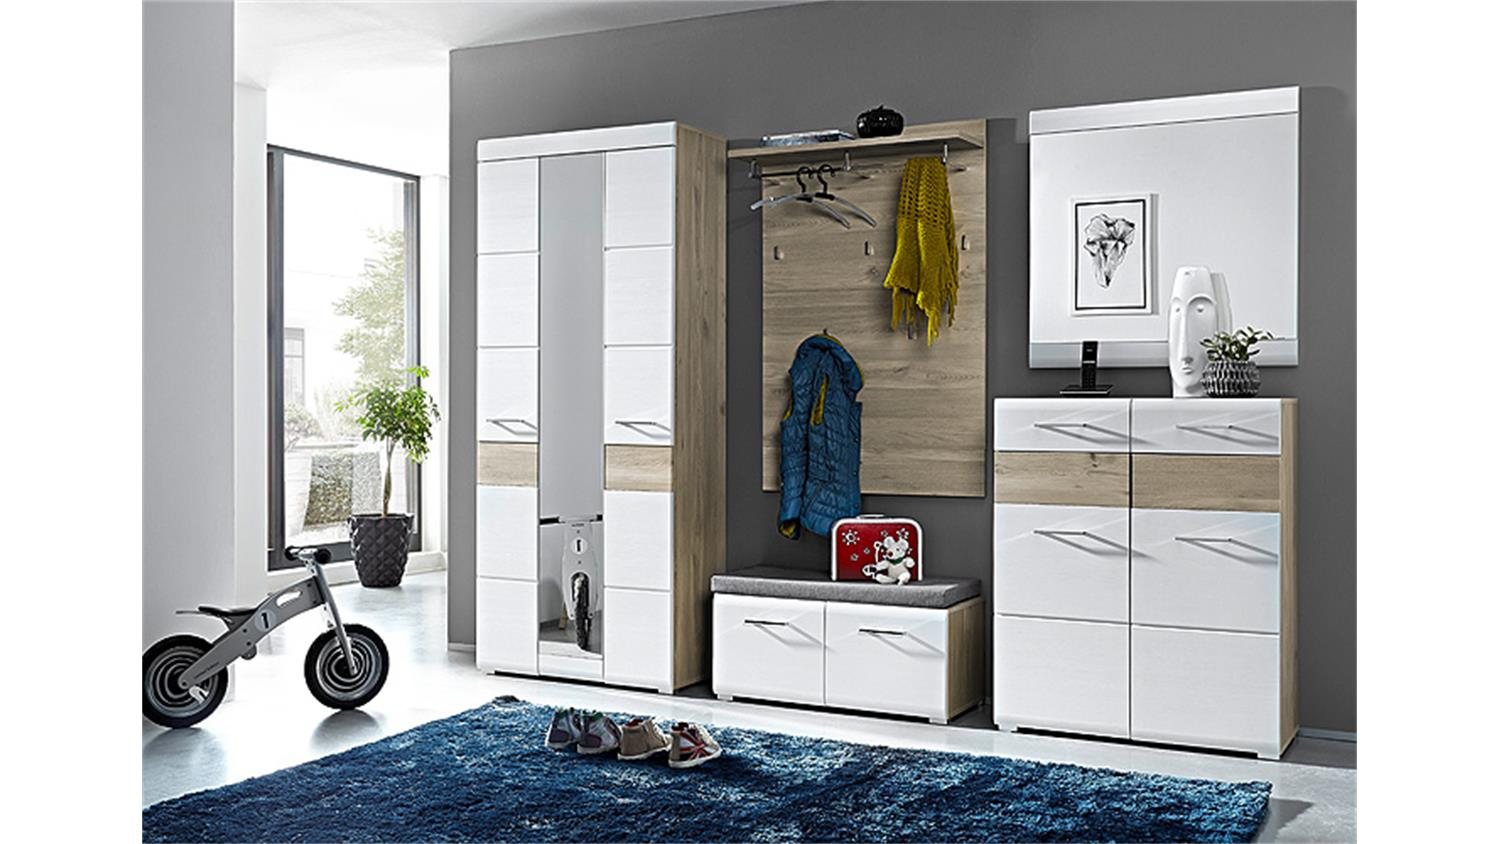 garderobe funny set mit schrank paneel spiegel wei struktur silbereiche. Black Bedroom Furniture Sets. Home Design Ideas